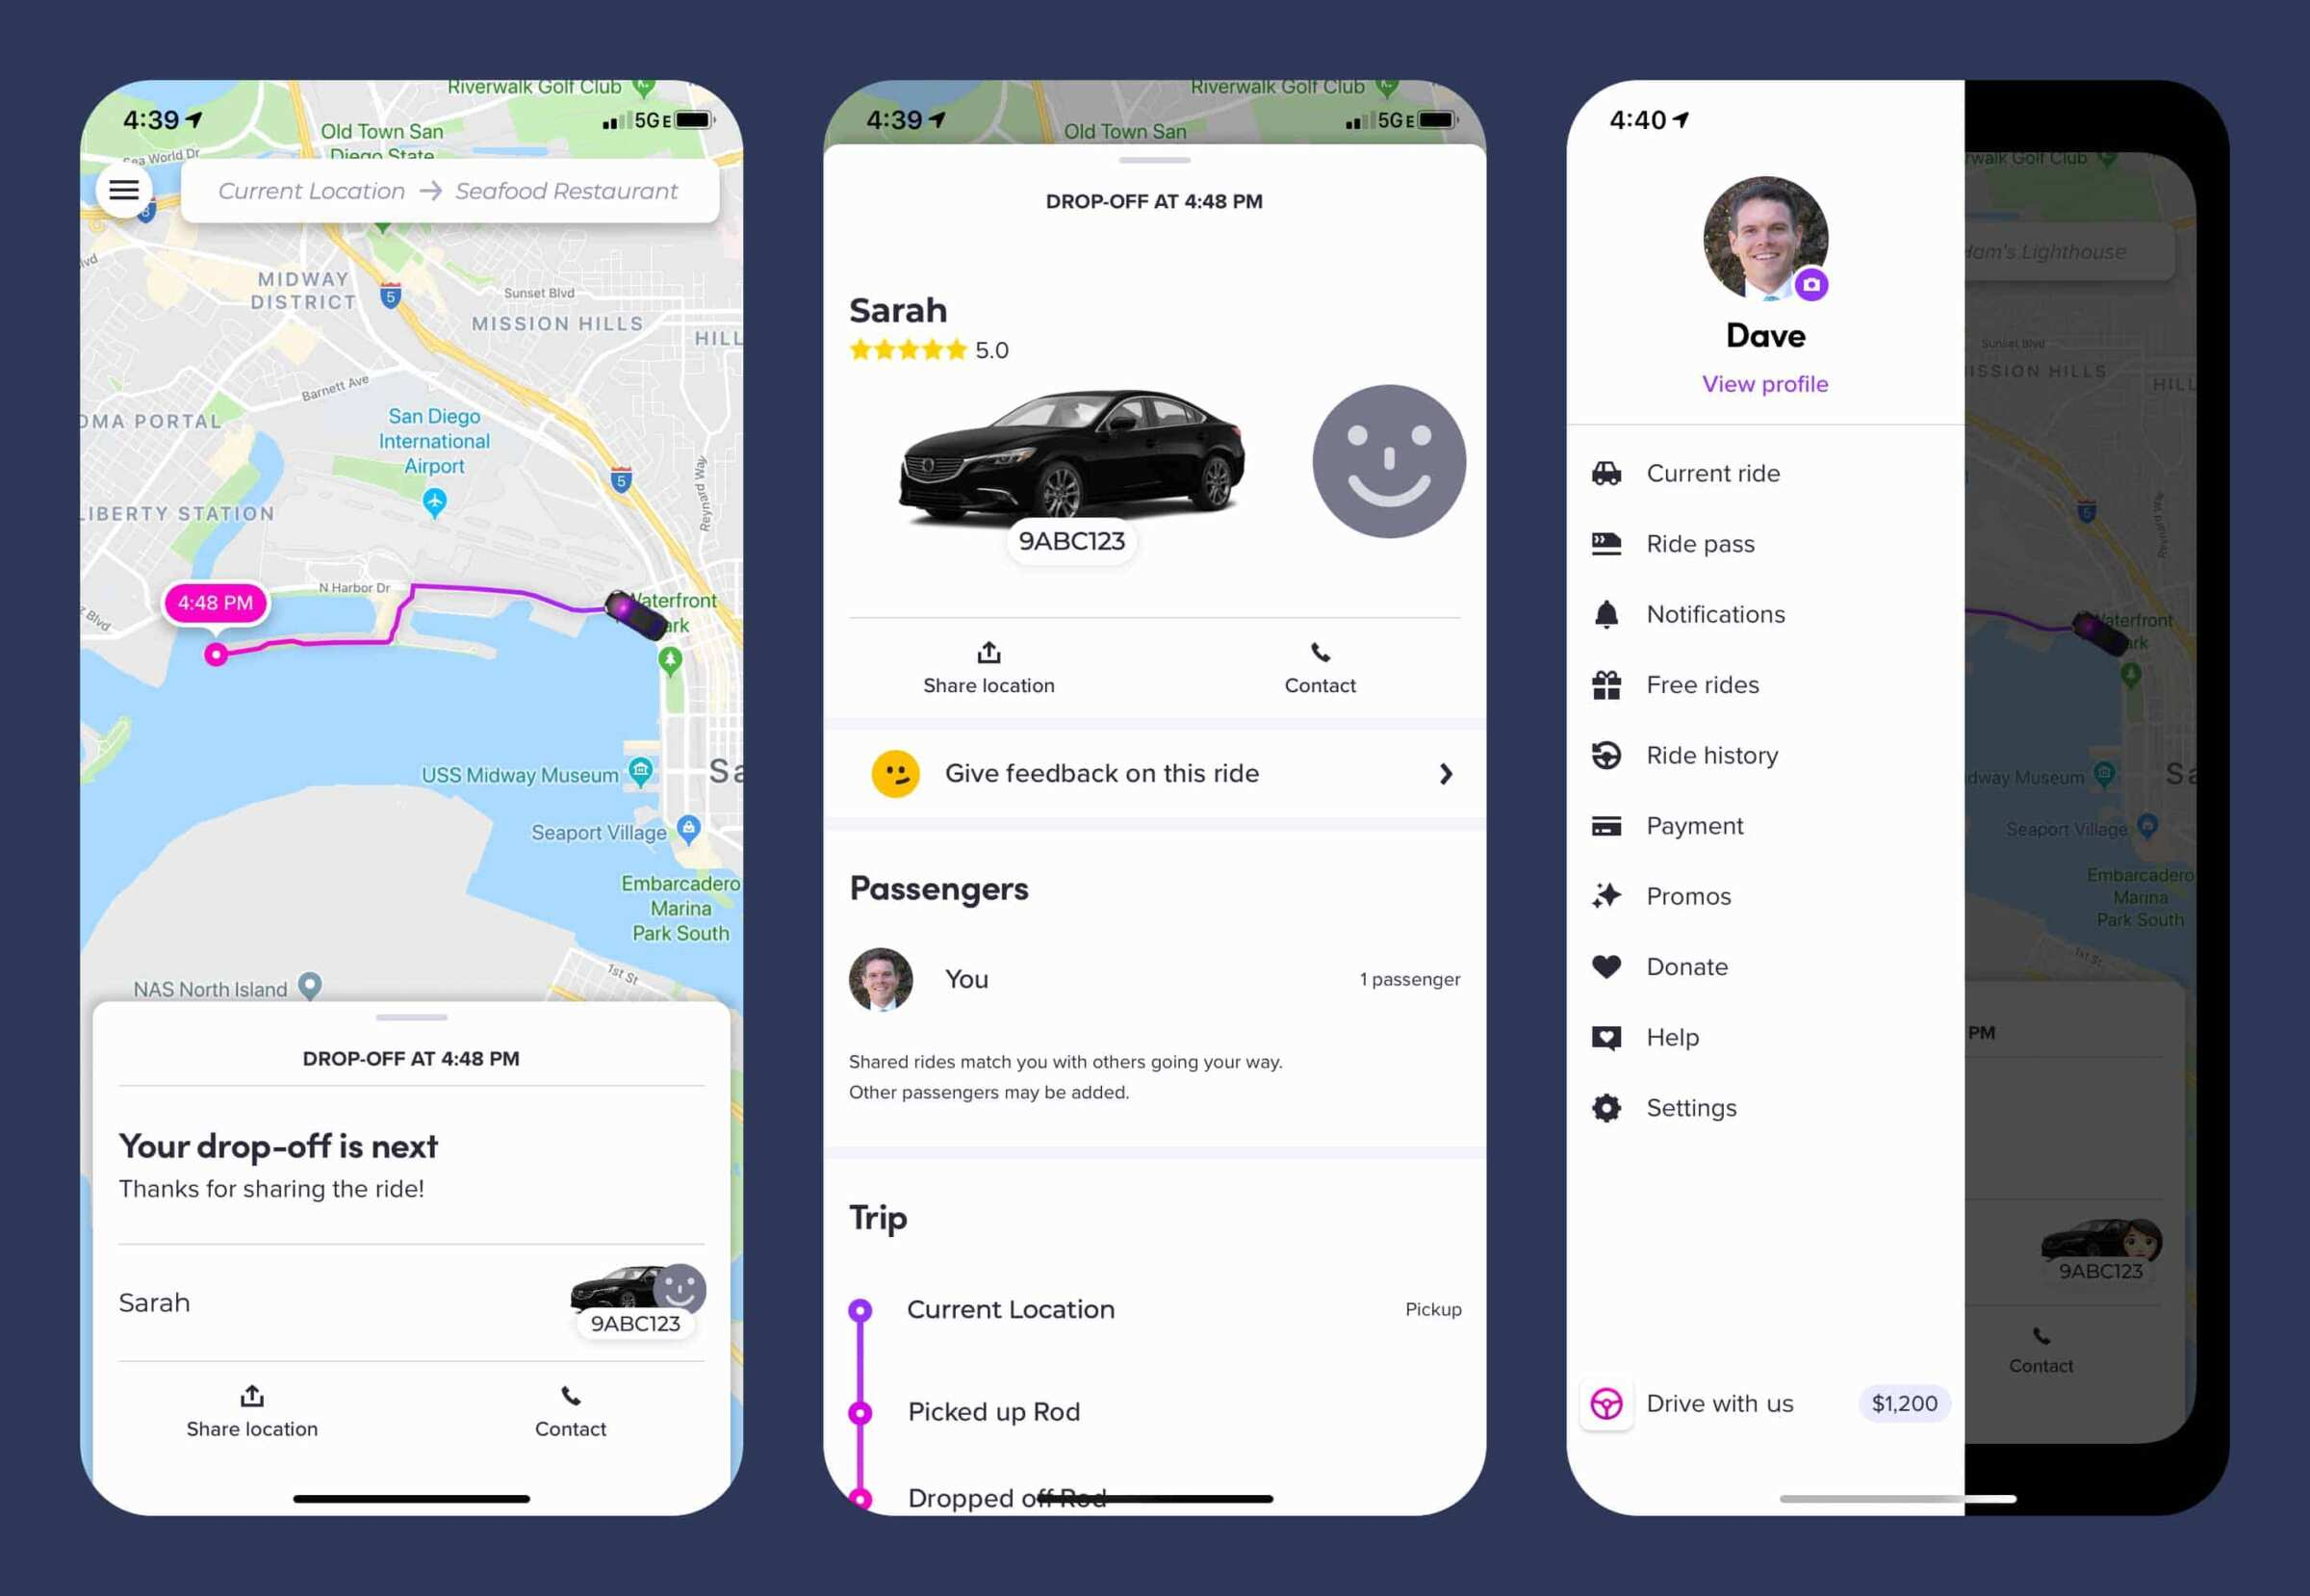 Three screenshots of various areas within the app, one showing a map & route, another showing info about the driver & the third showing settings & options.